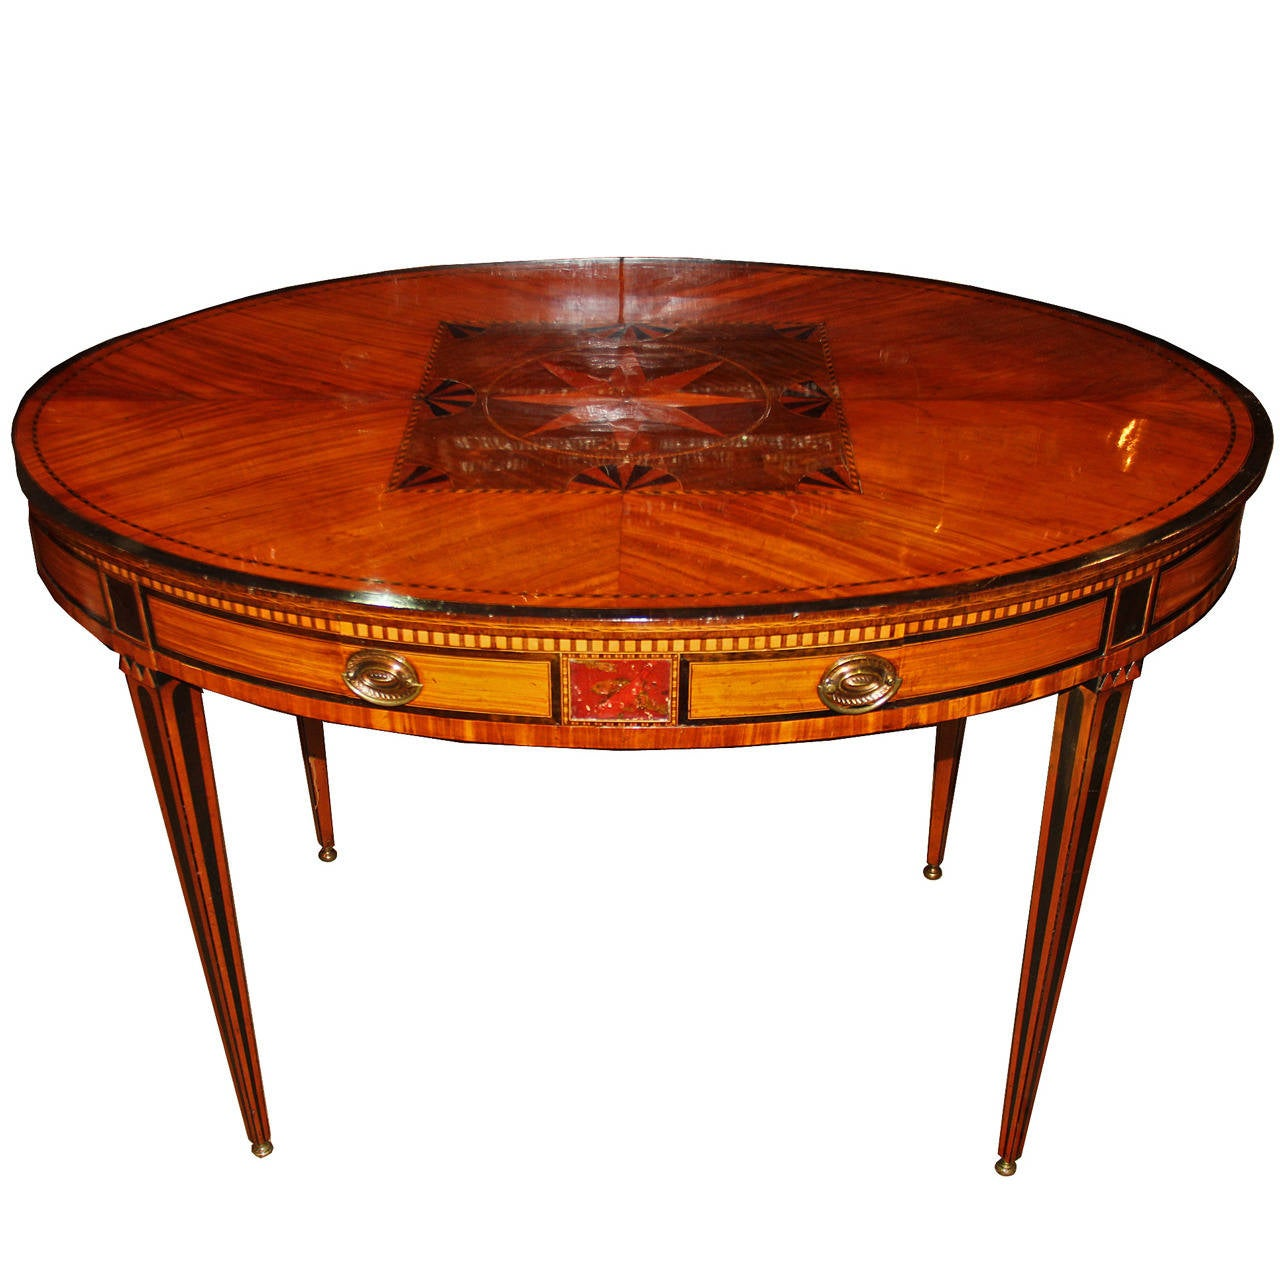 19th century english parquetry center table at 1stdibs